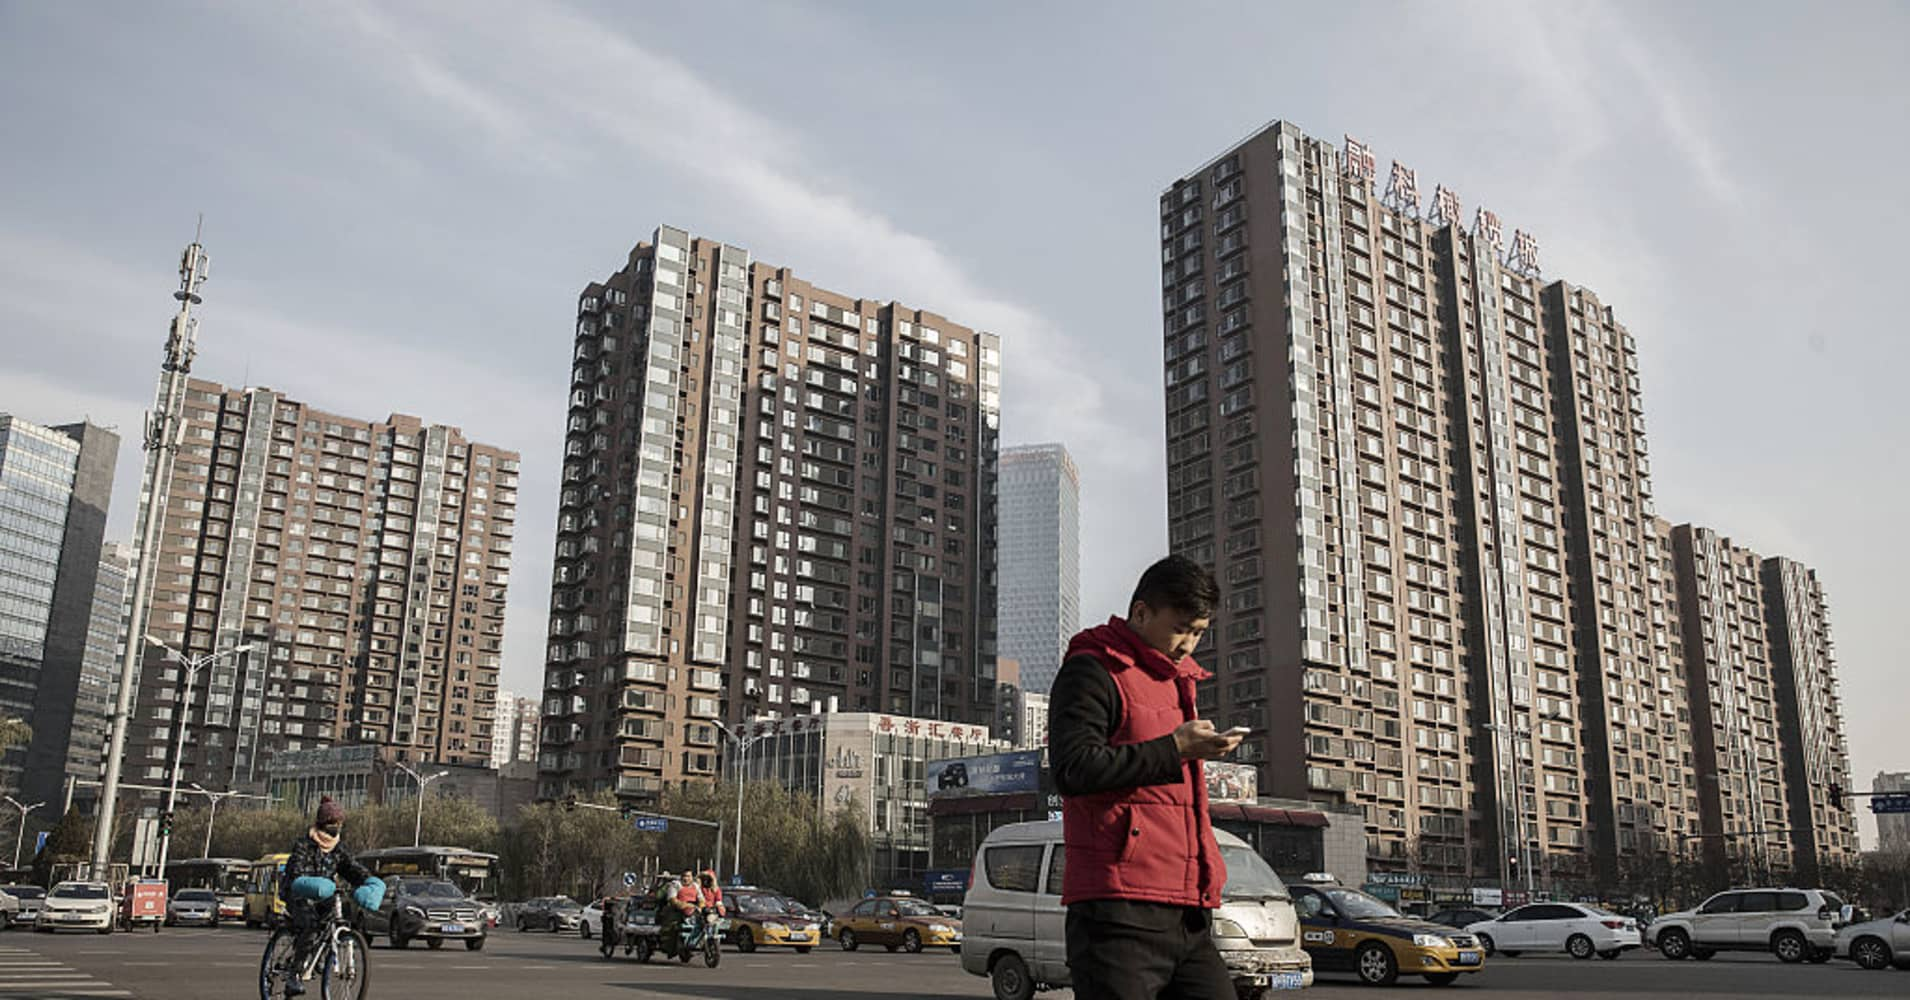 China's real estate loan growth slows further in 2018